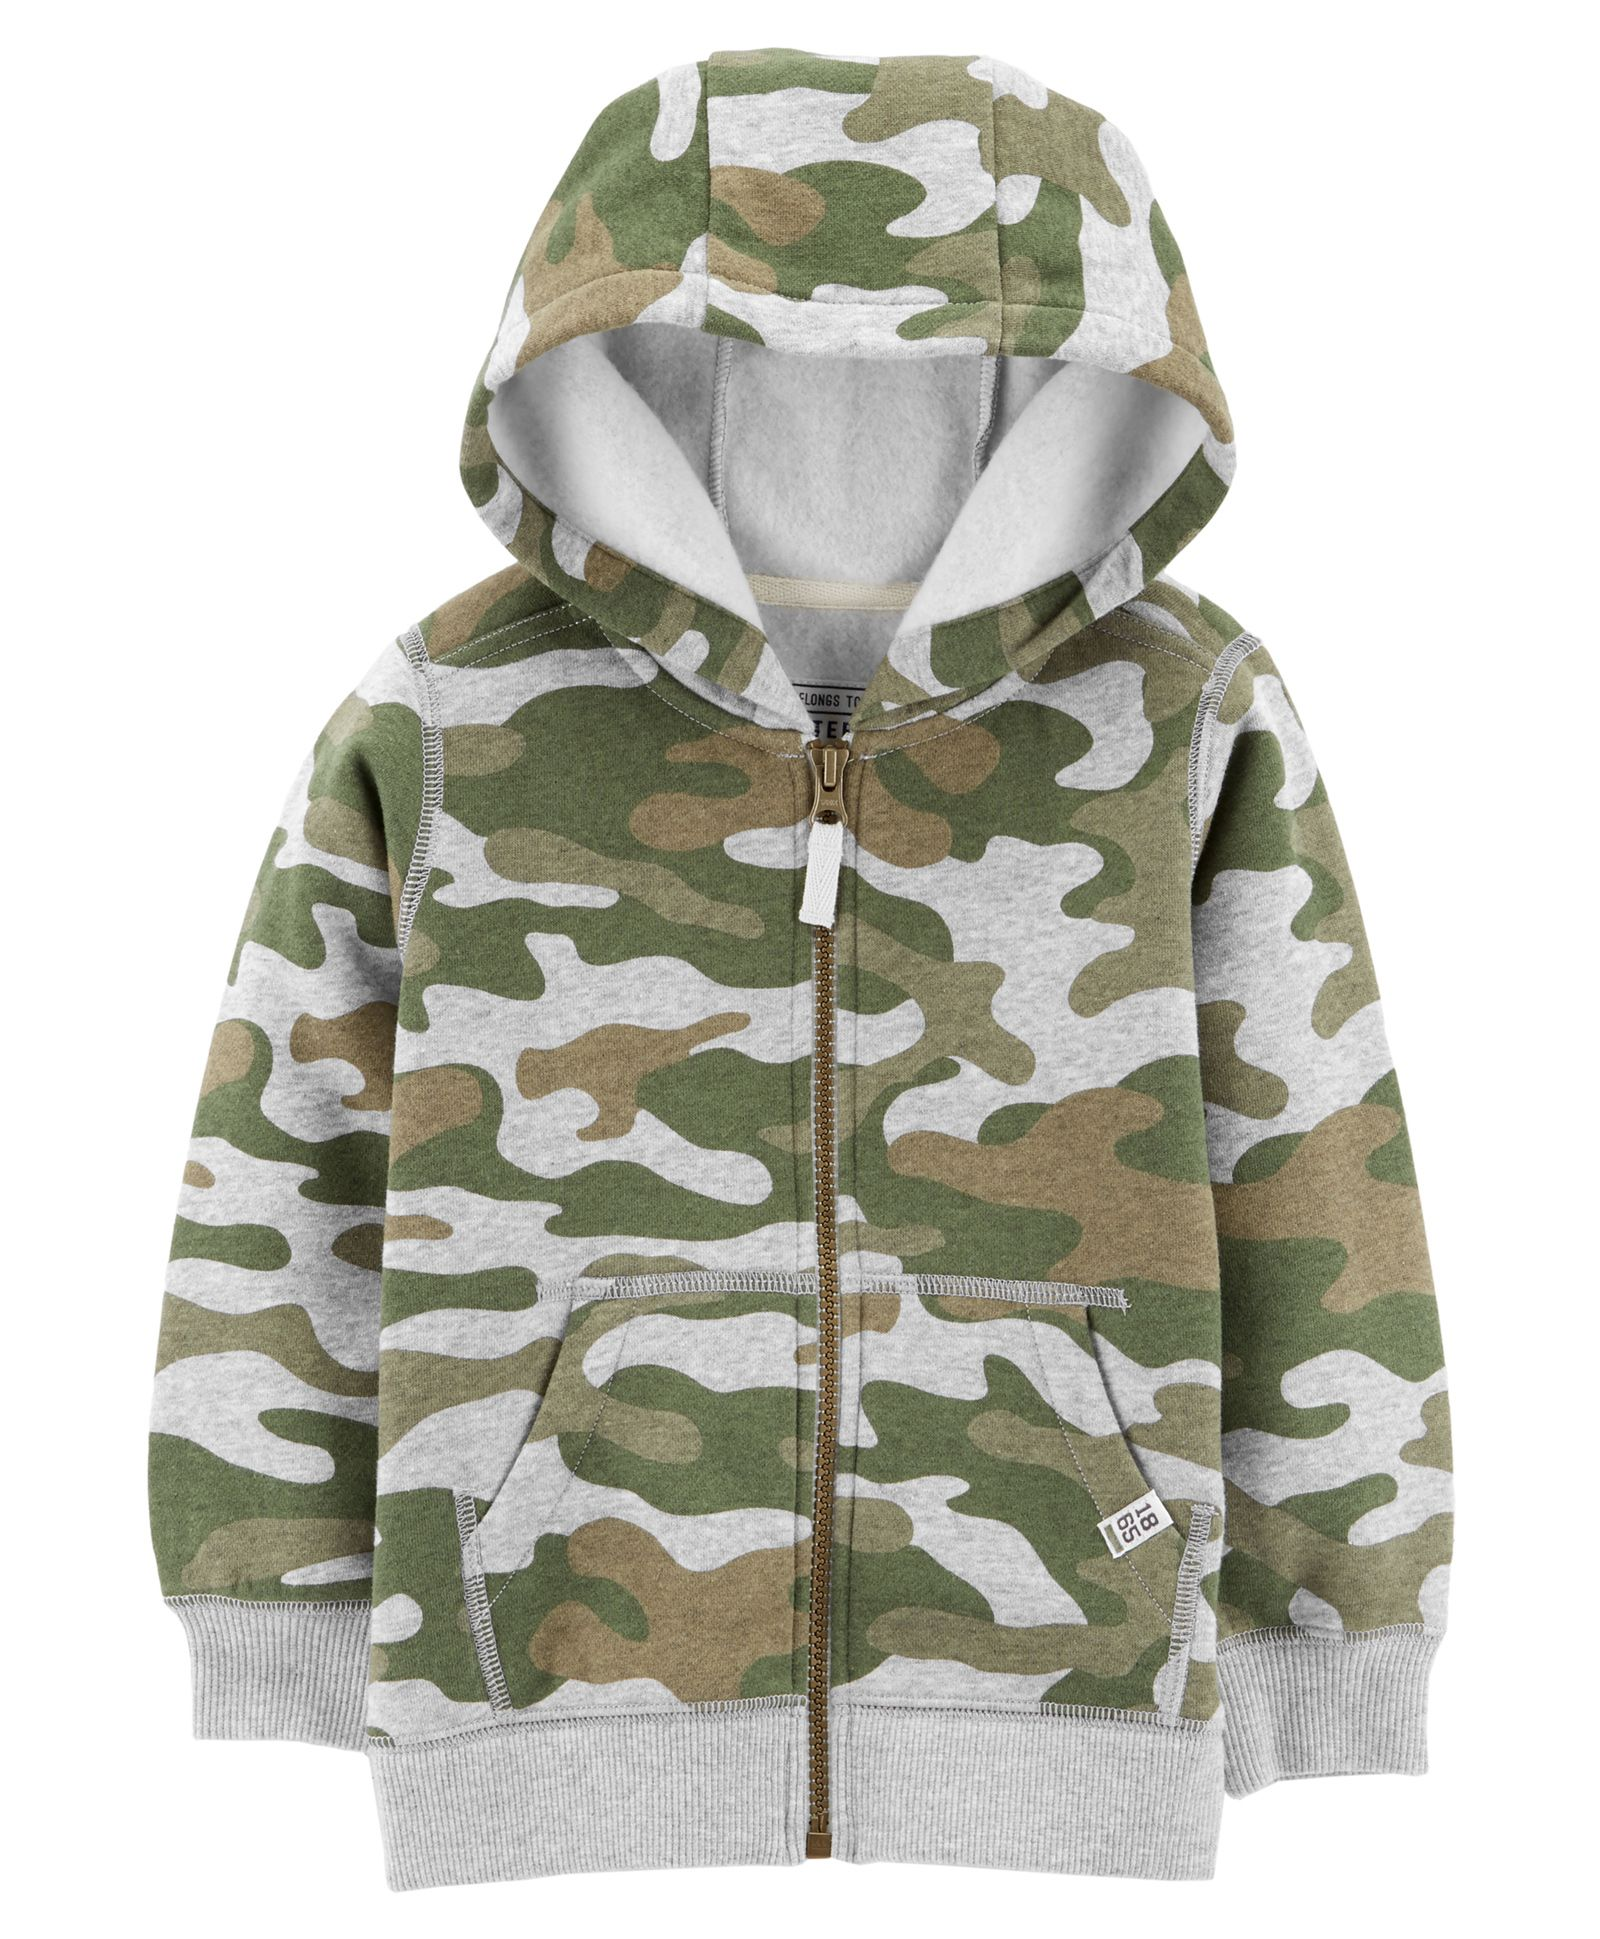 Camo Hoodie India Buy Carters Zip Up Hoodie Green For Boys 6 9 Months Online In India Shop At Firstcry 1916299